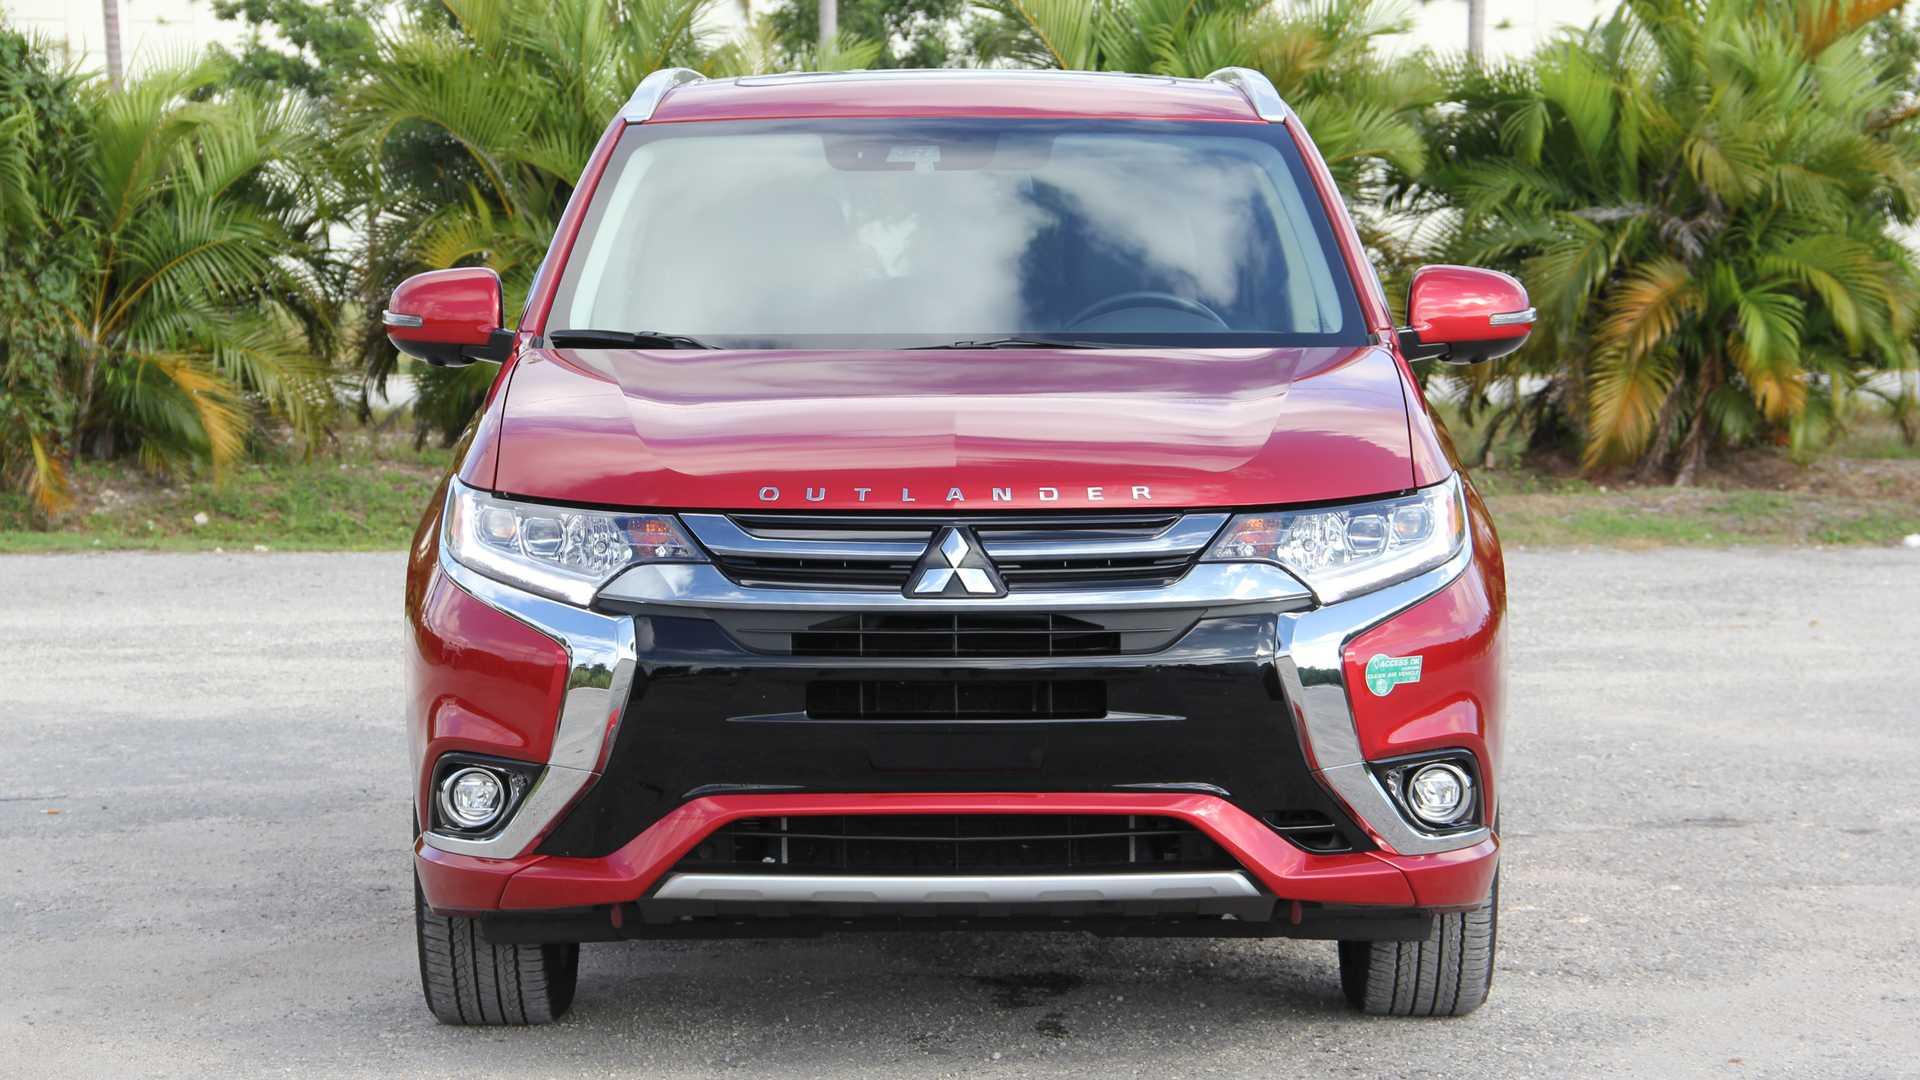 2018 Mitsubishi Outlander PHEV GT Review: Plug It In, Plug It In